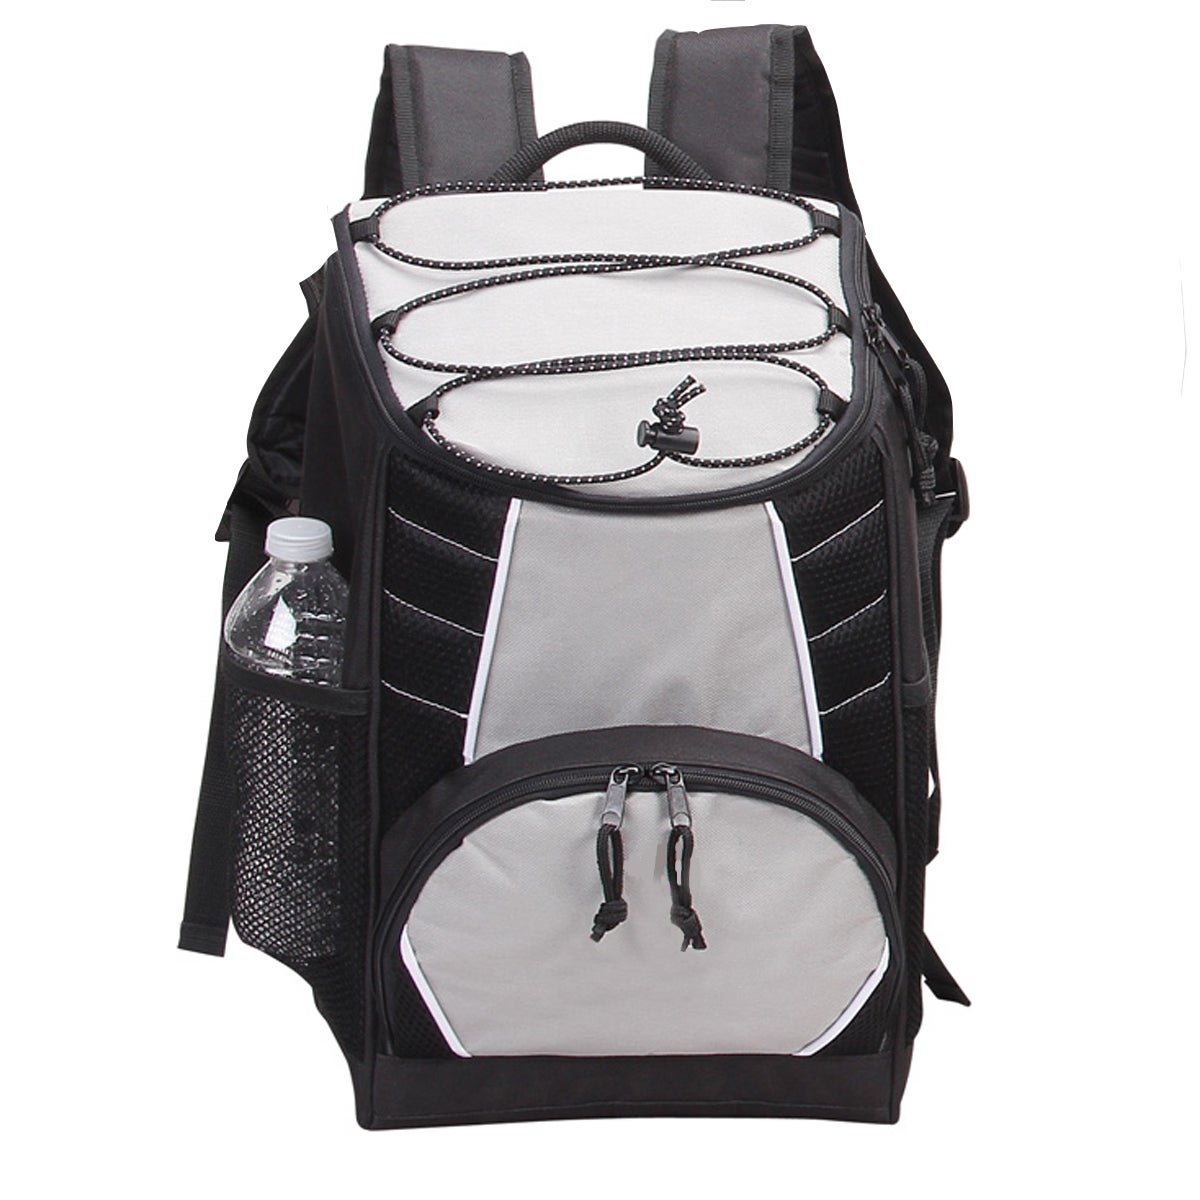 Preferred Nation Cooler Backpack (Black), Grey (Fabric, S...